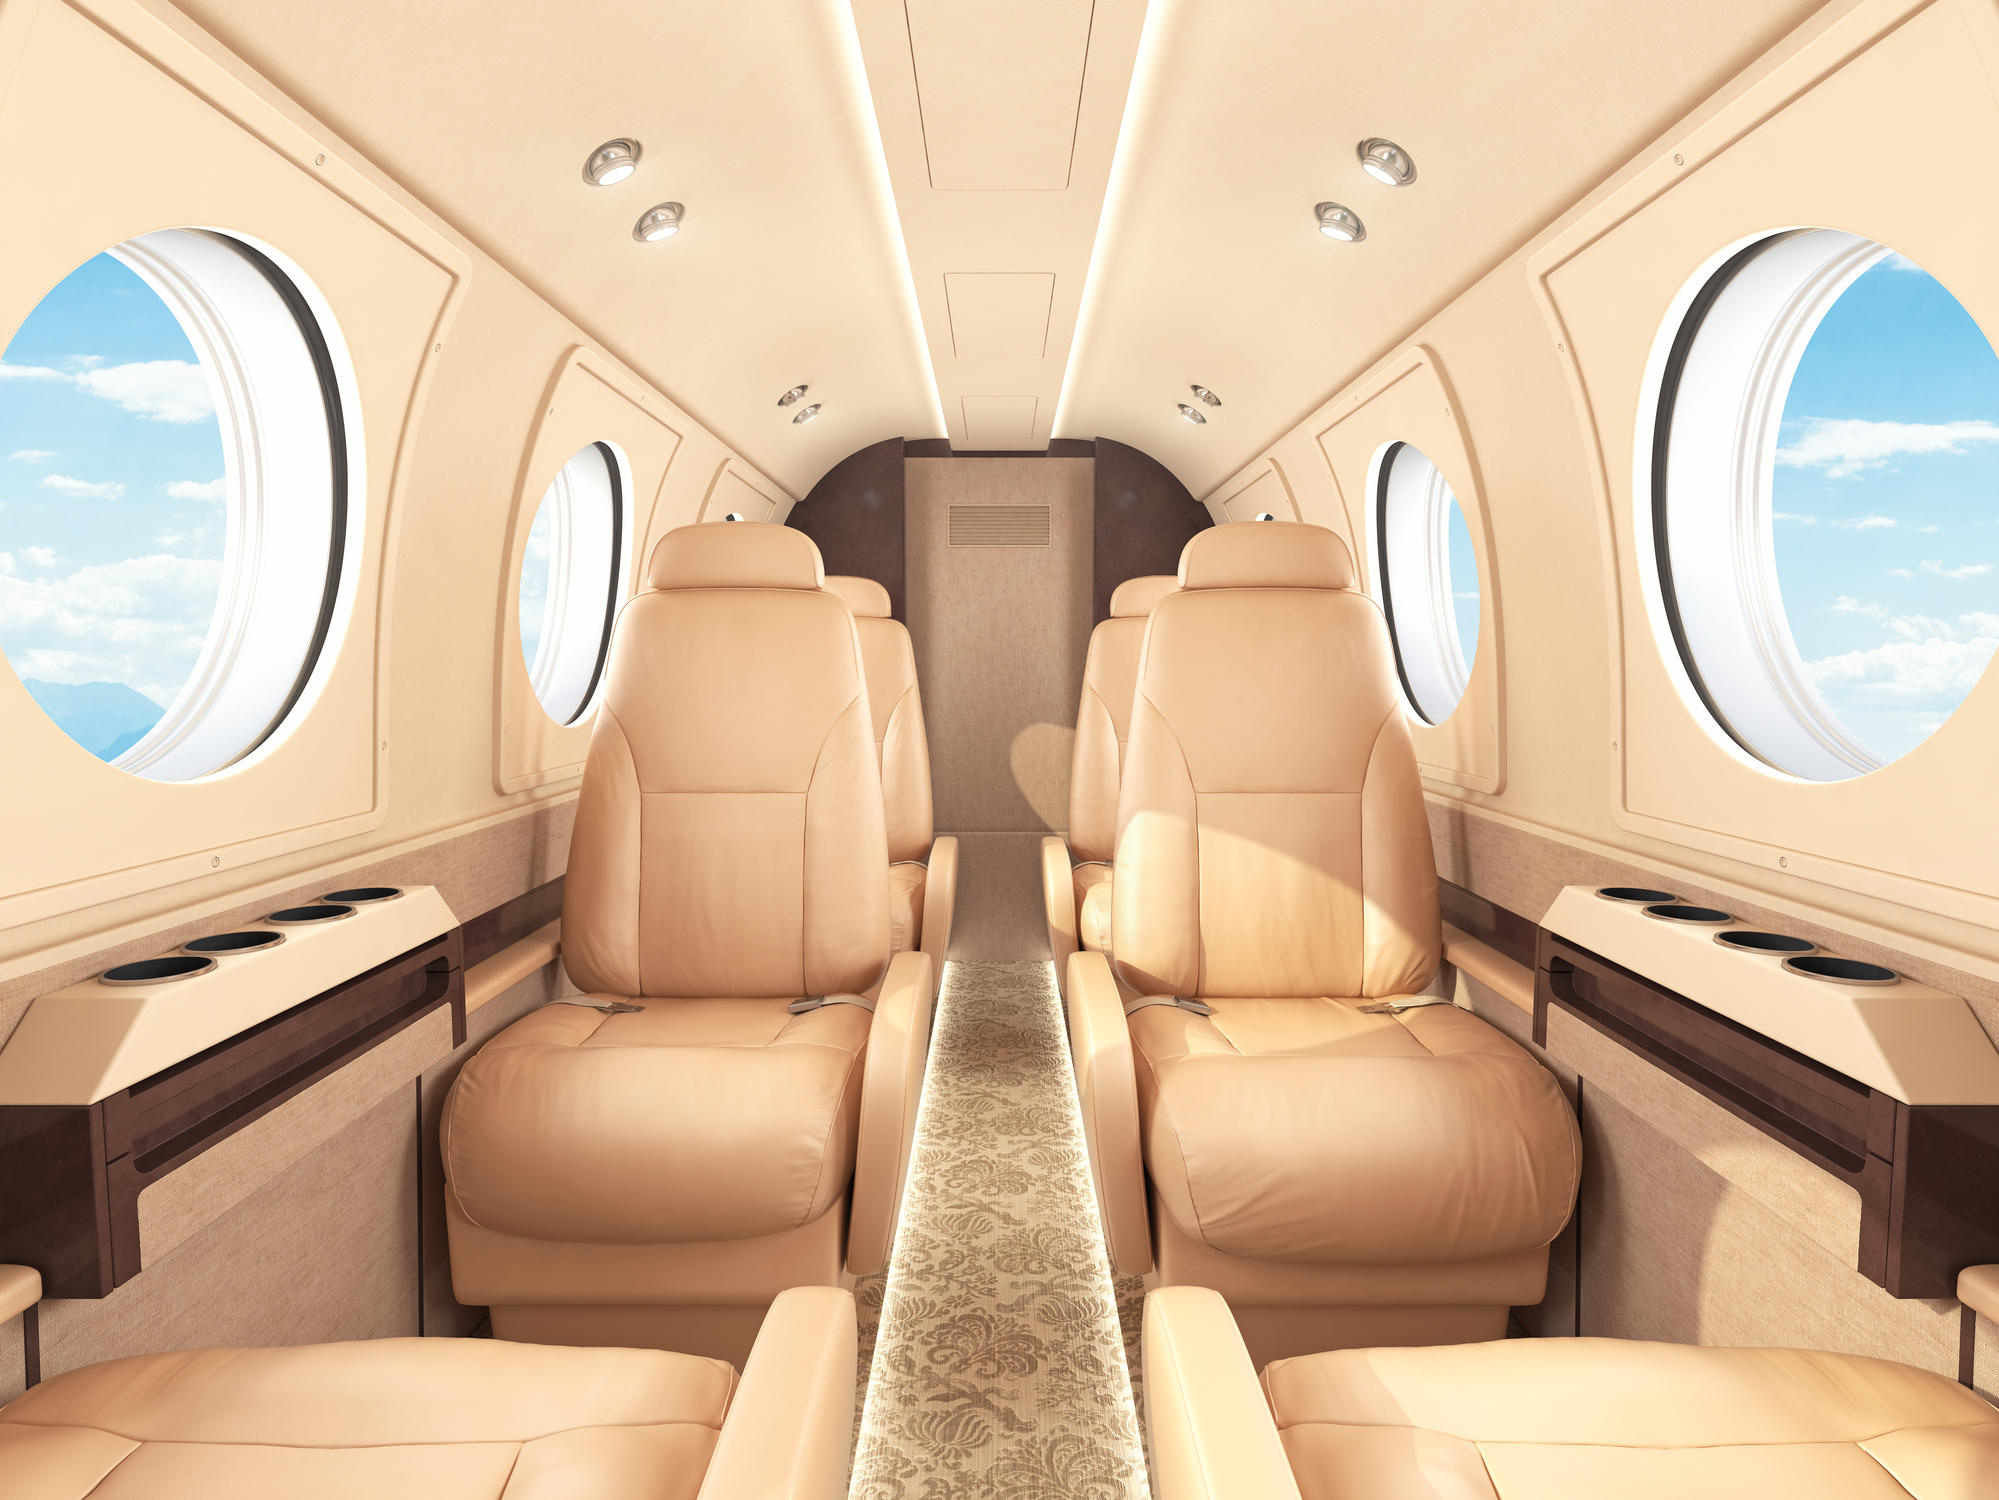 Interior of a business / private jet.